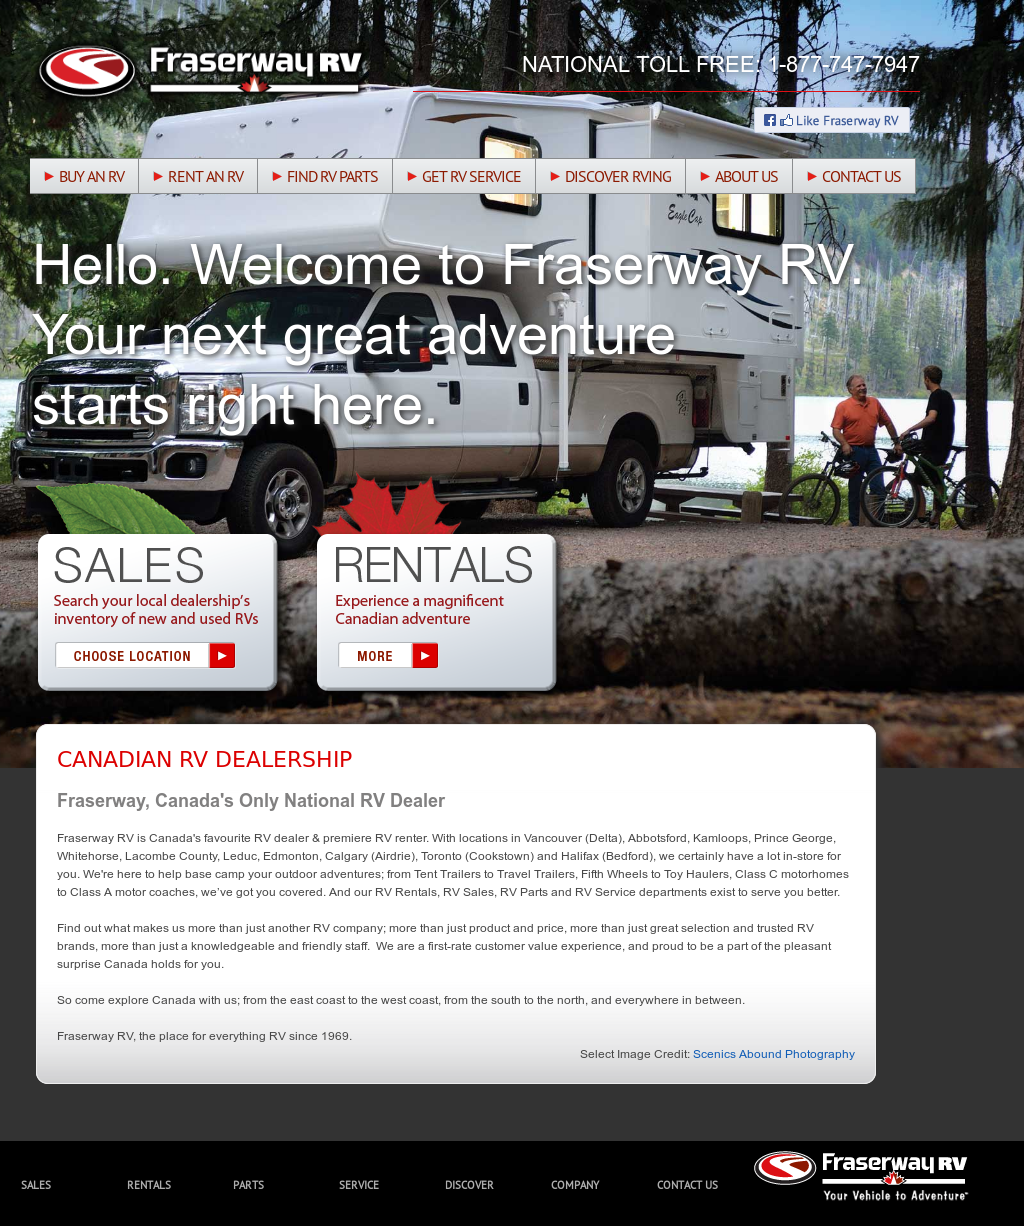 Fraserway RV Competitors, Revenue and Employees - Owler